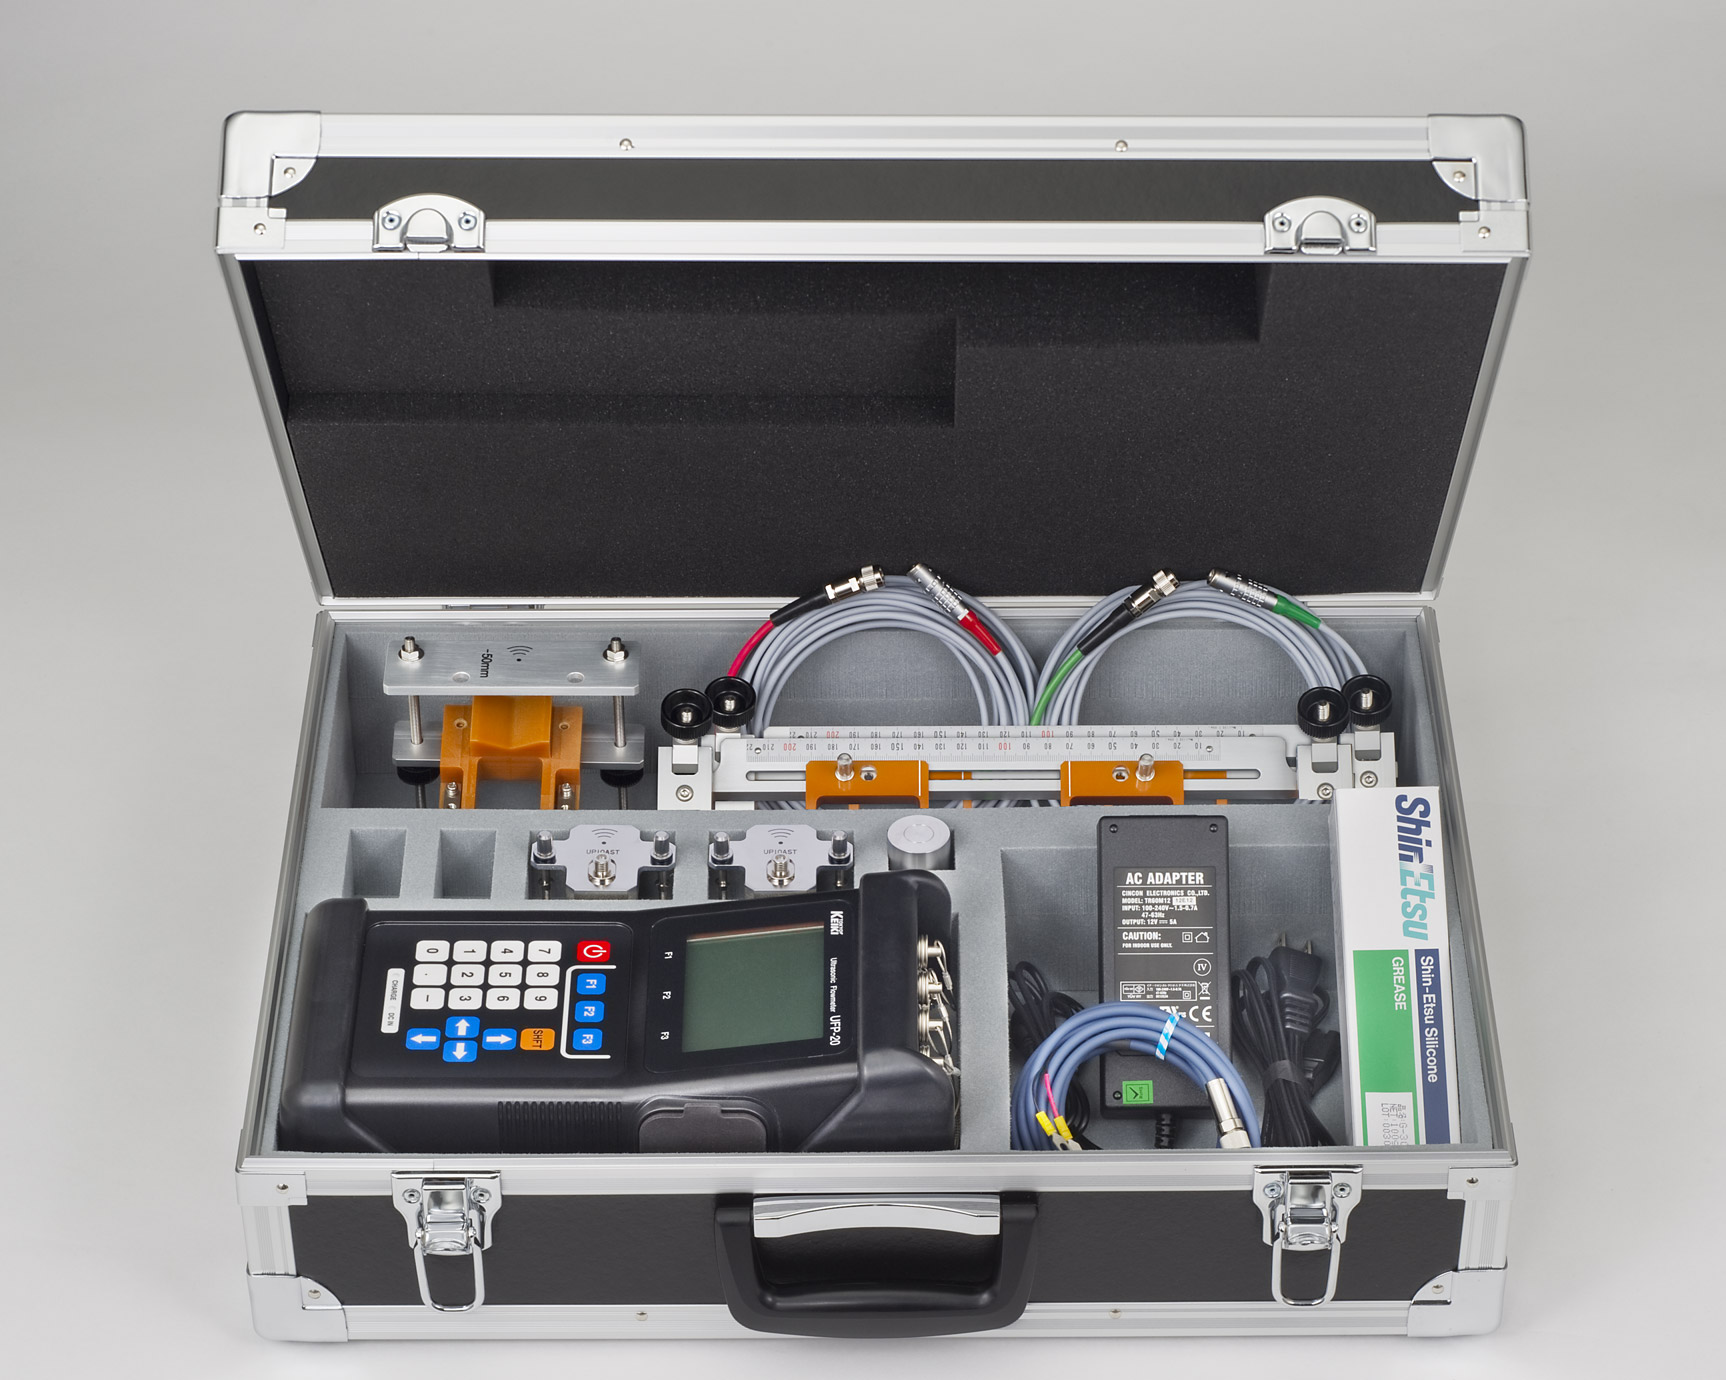 UFP20 Portable Flowmeter Kit, Atlanta Instruments, South Africa